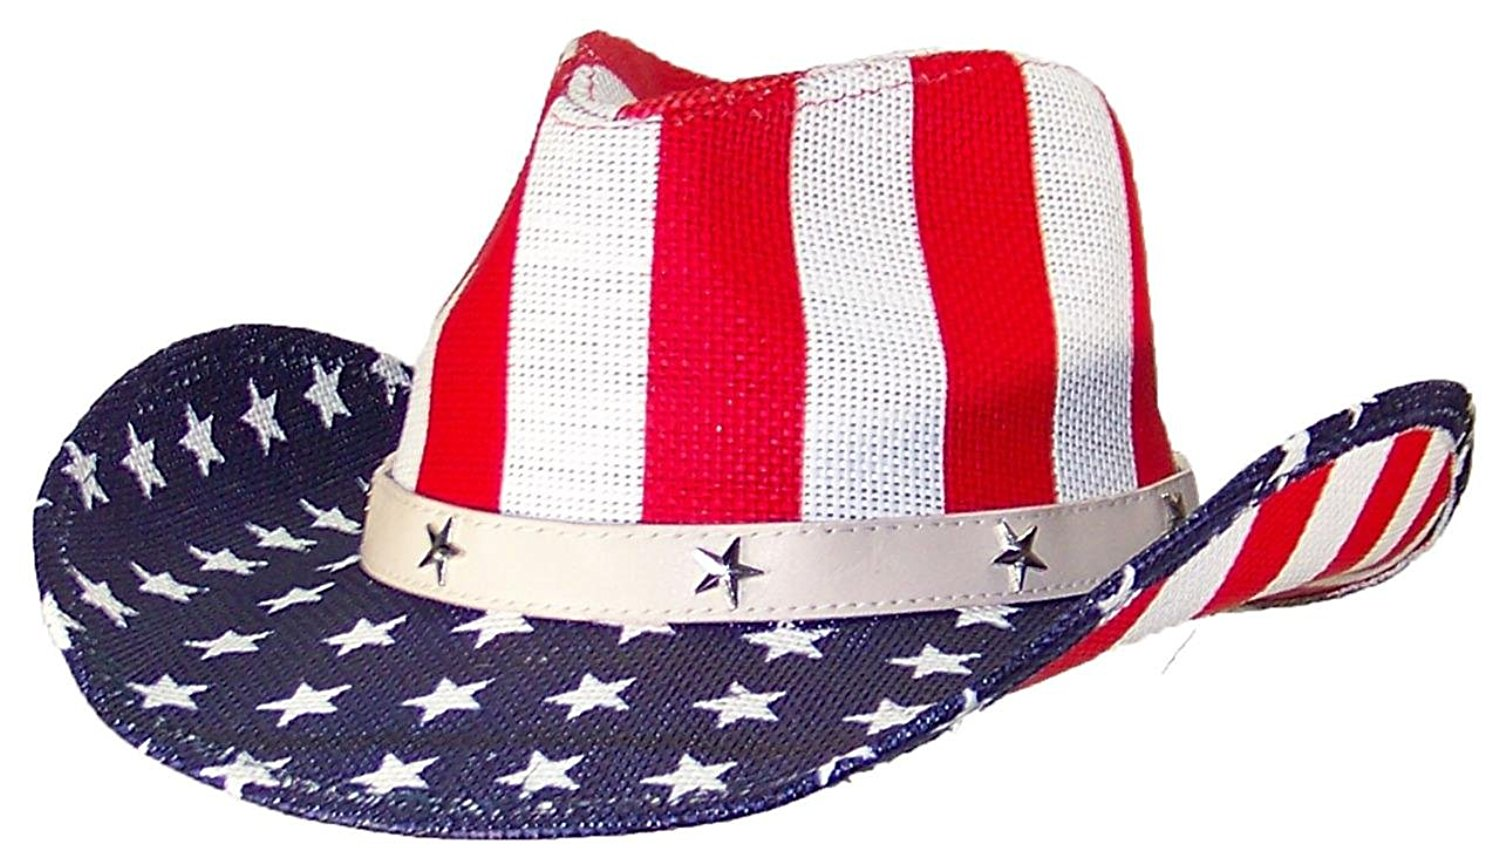 e1c353f31d417 Get Quotations · Tropic Hats Mens Patriotic U.S. Flag Cowboy Hat W Metal  Stars On Band (One